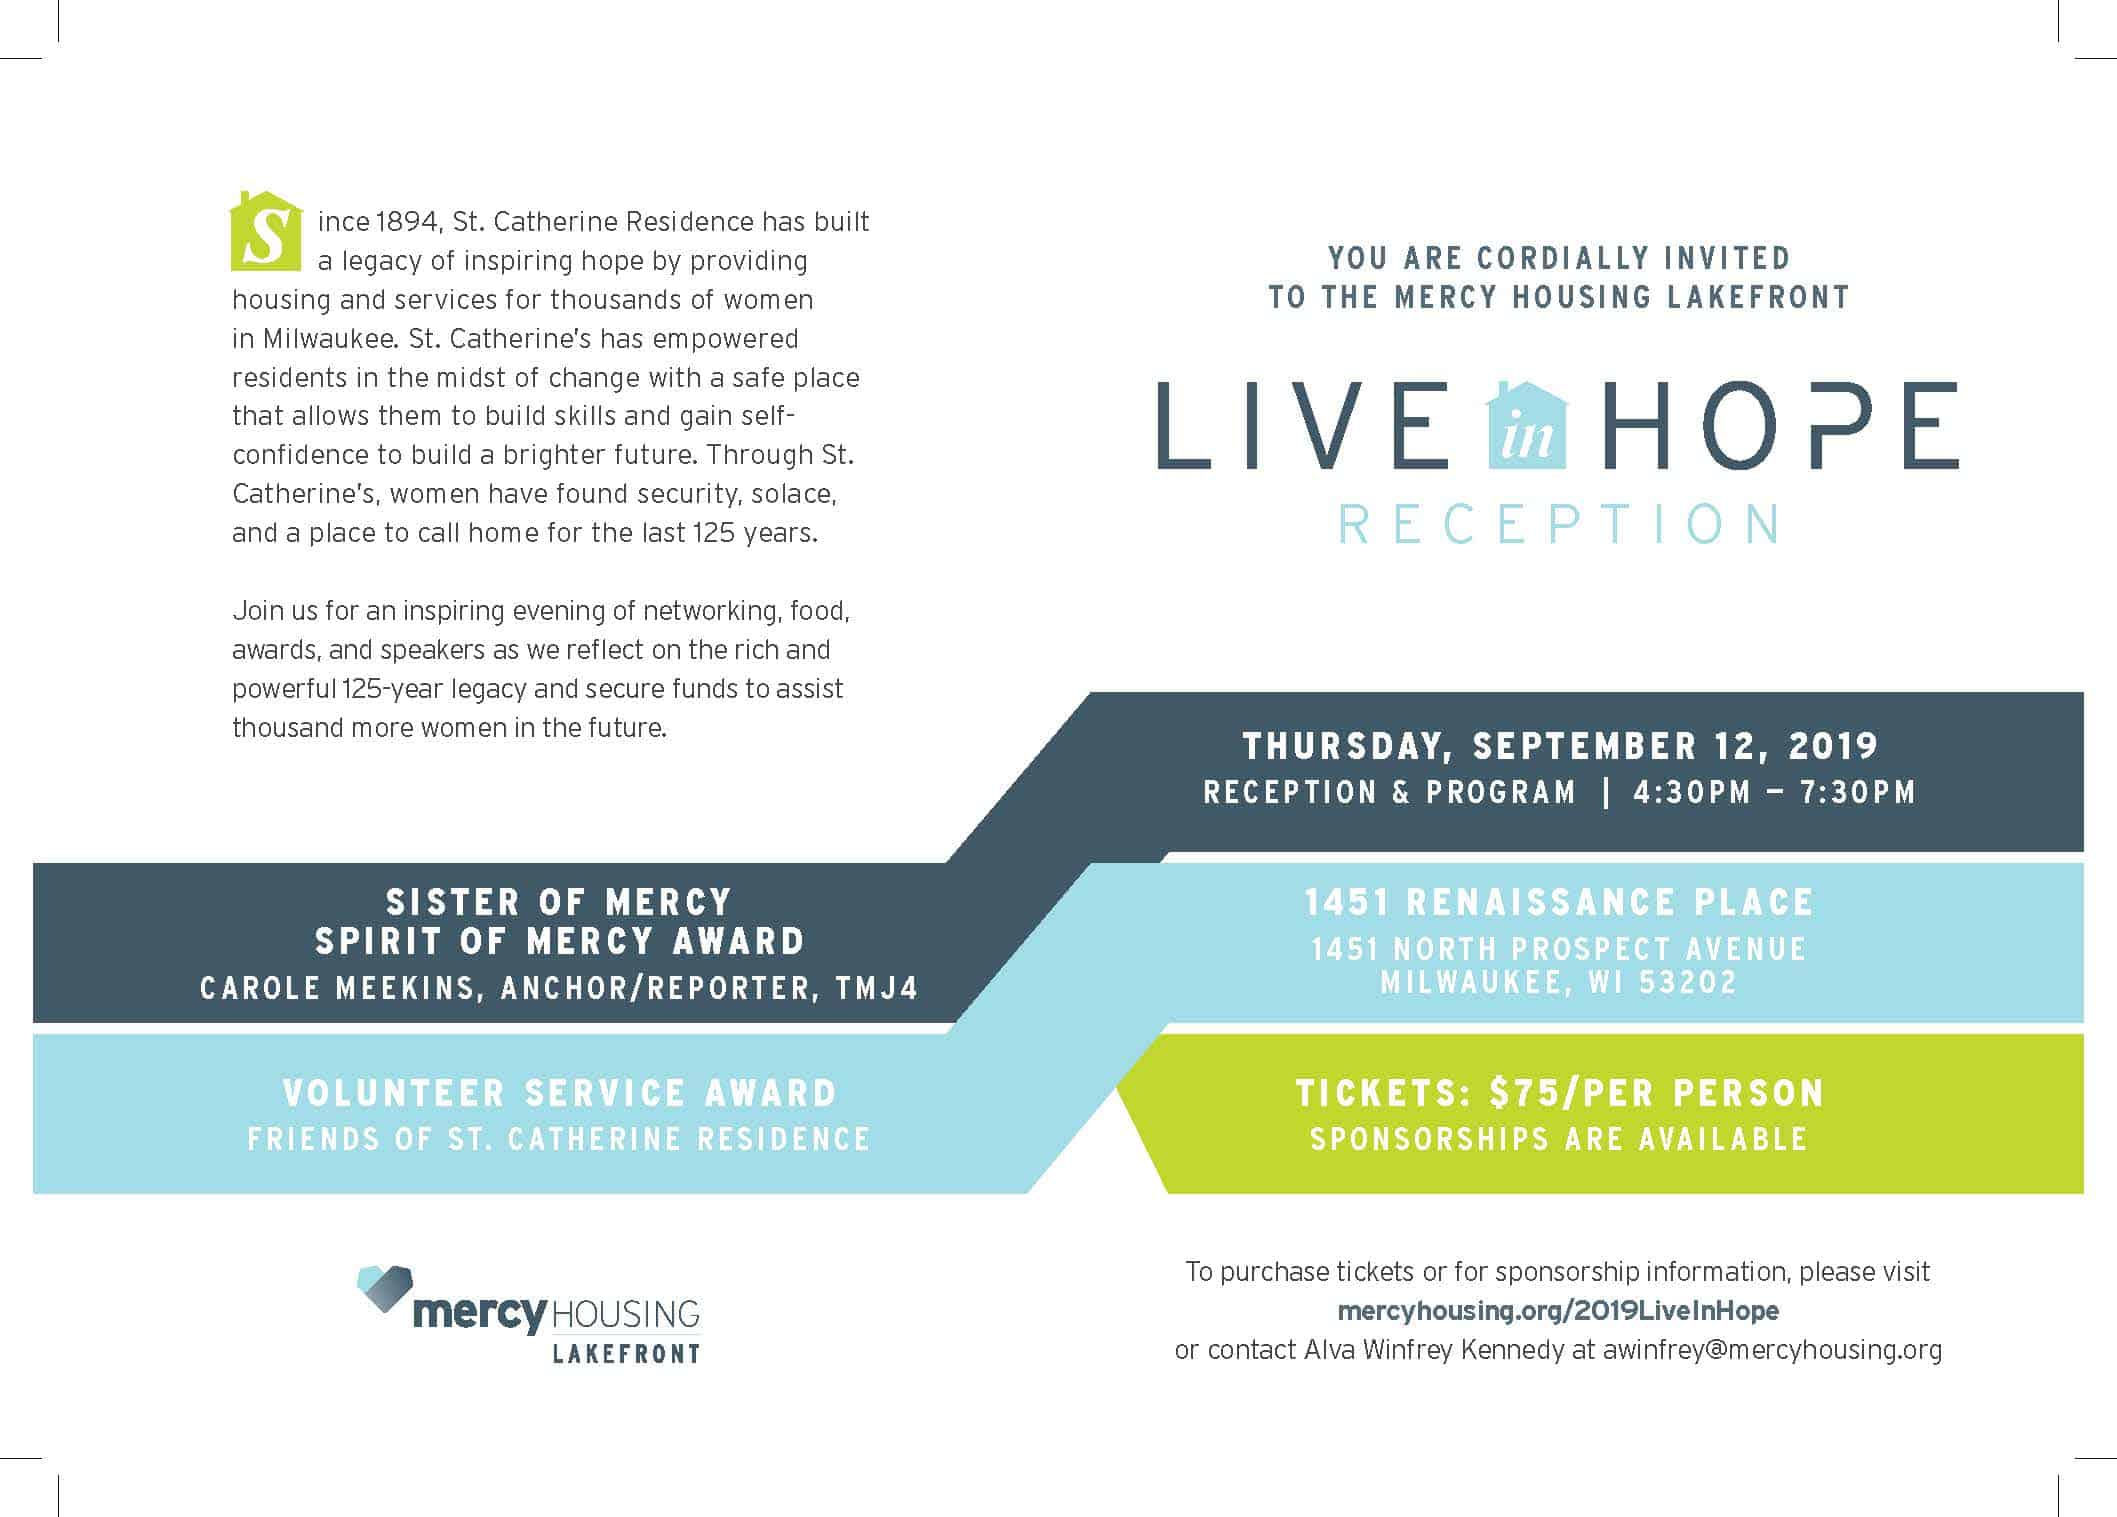 Mercy Housing Lakefront Live In Hope Reception